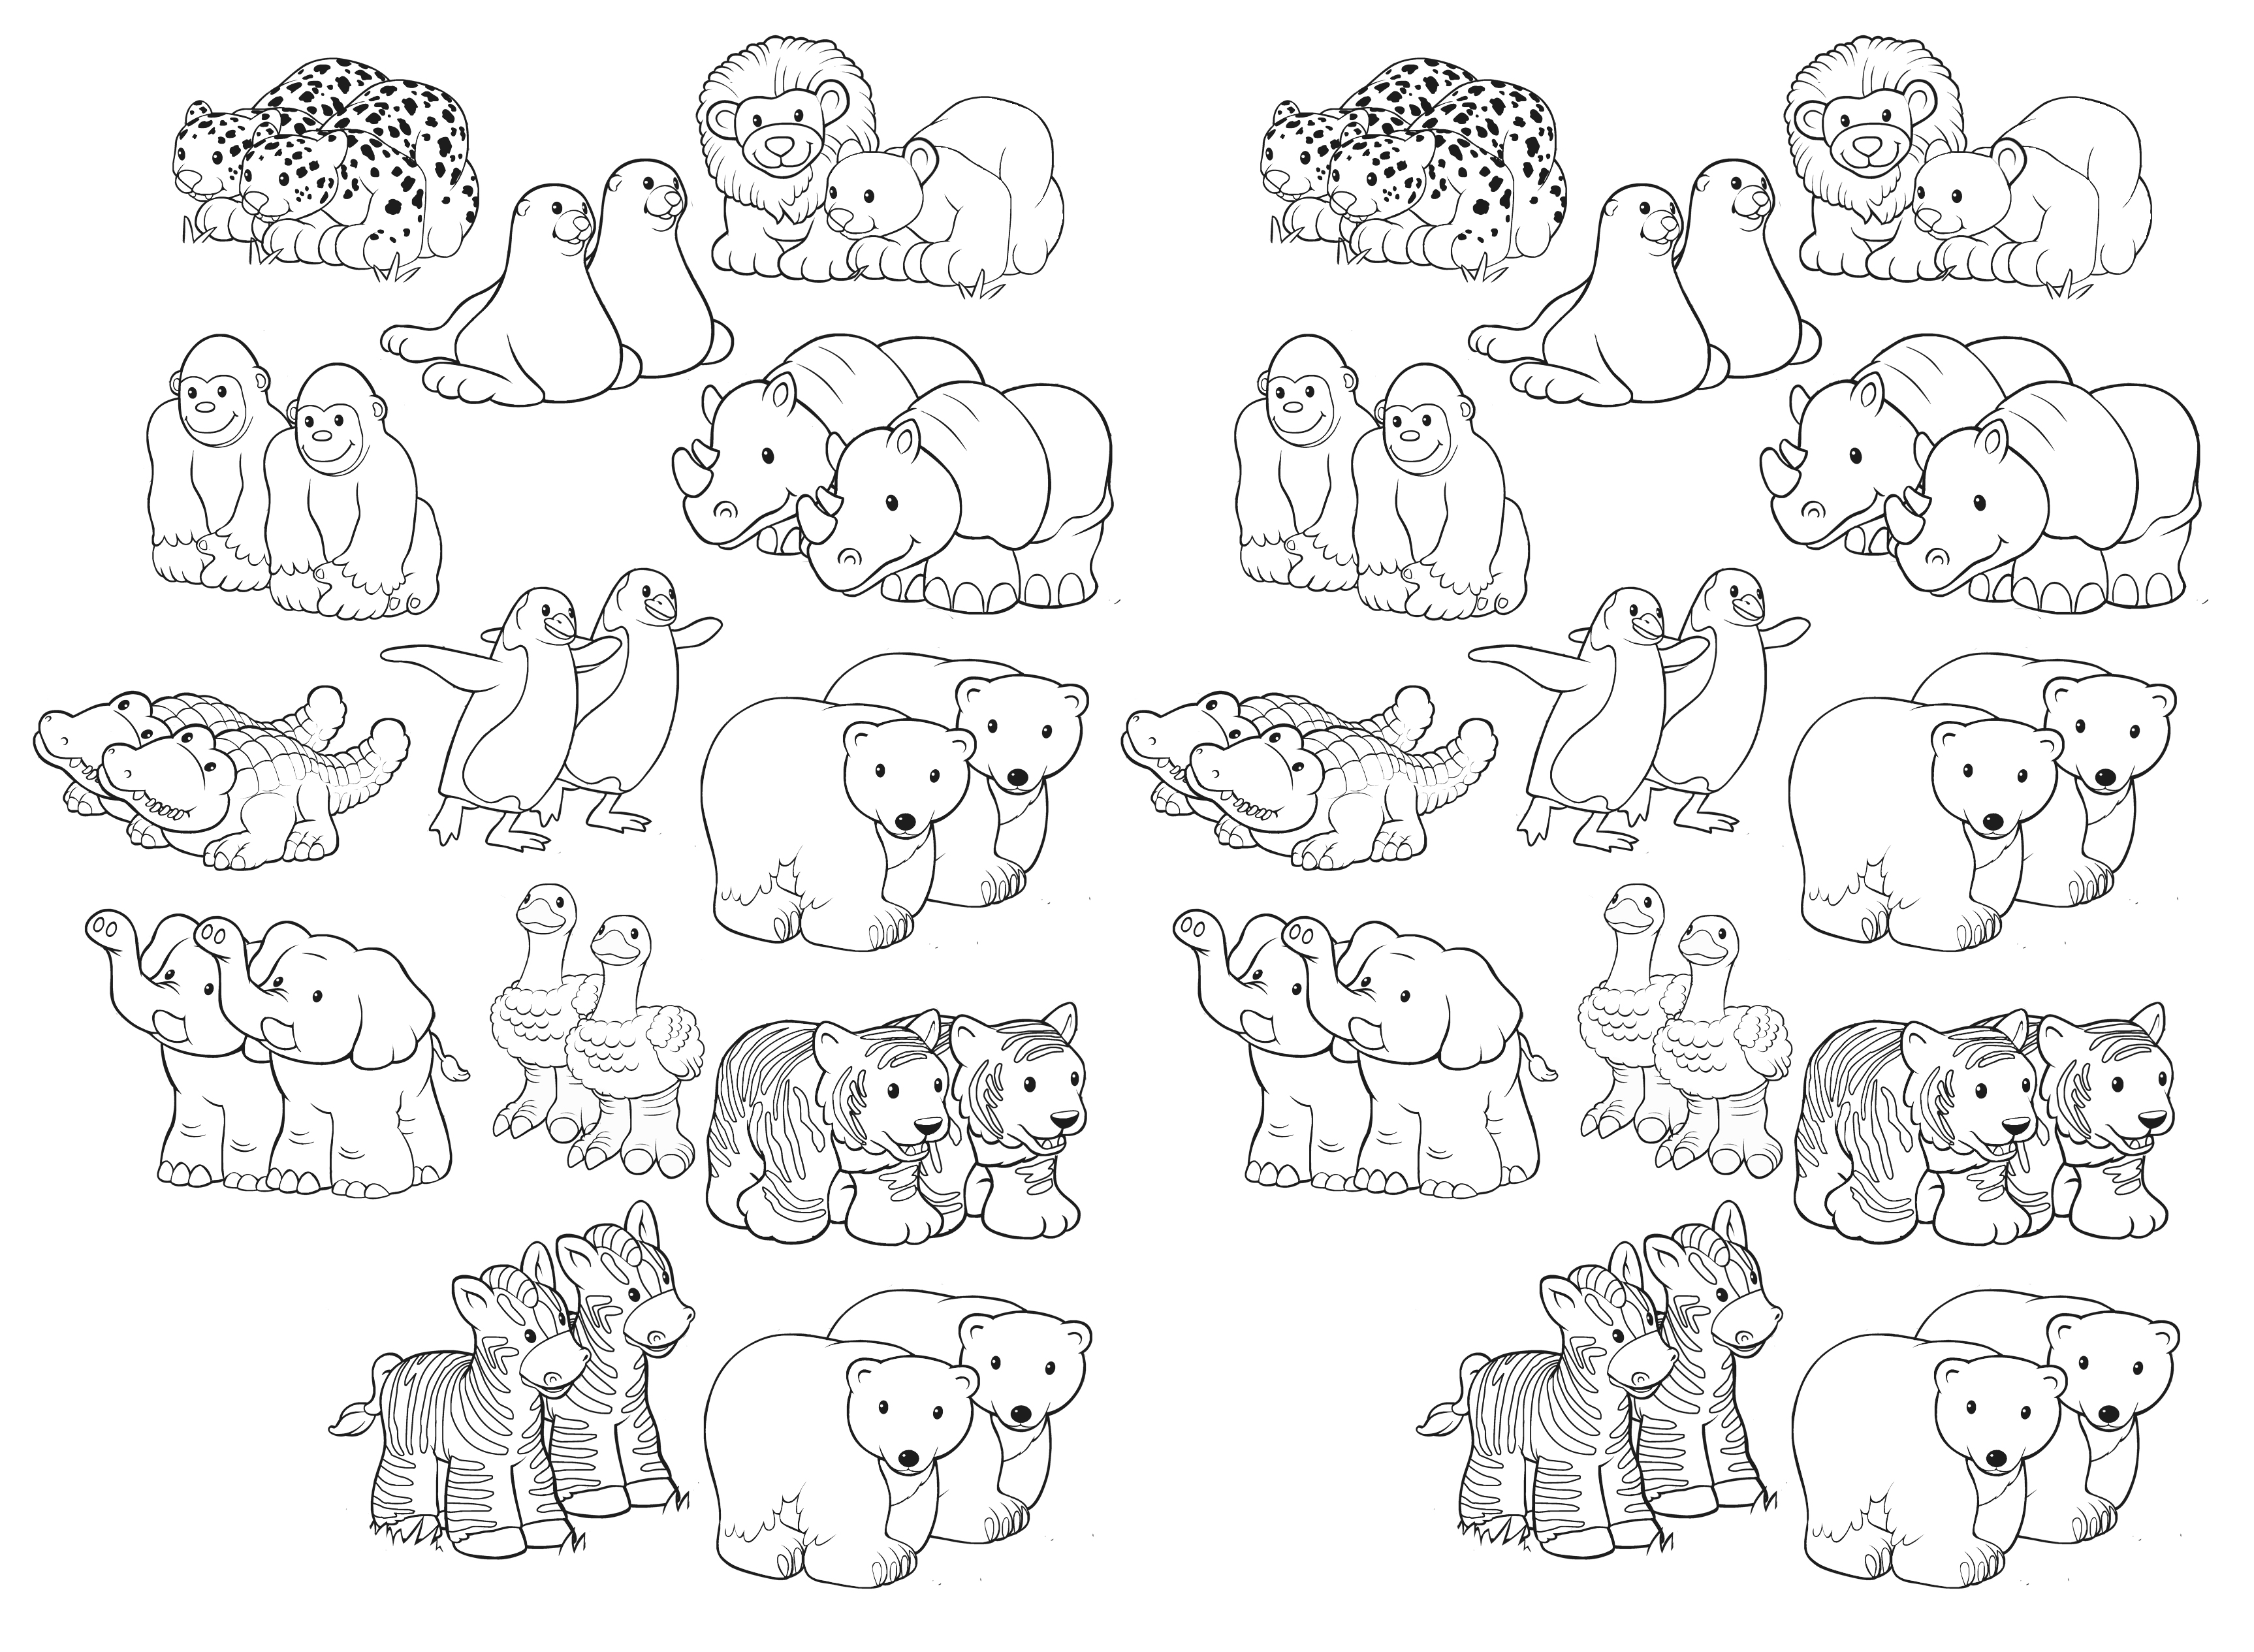 Noahs Ark Coloring Page At Getdrawings Com Free For Personal Use